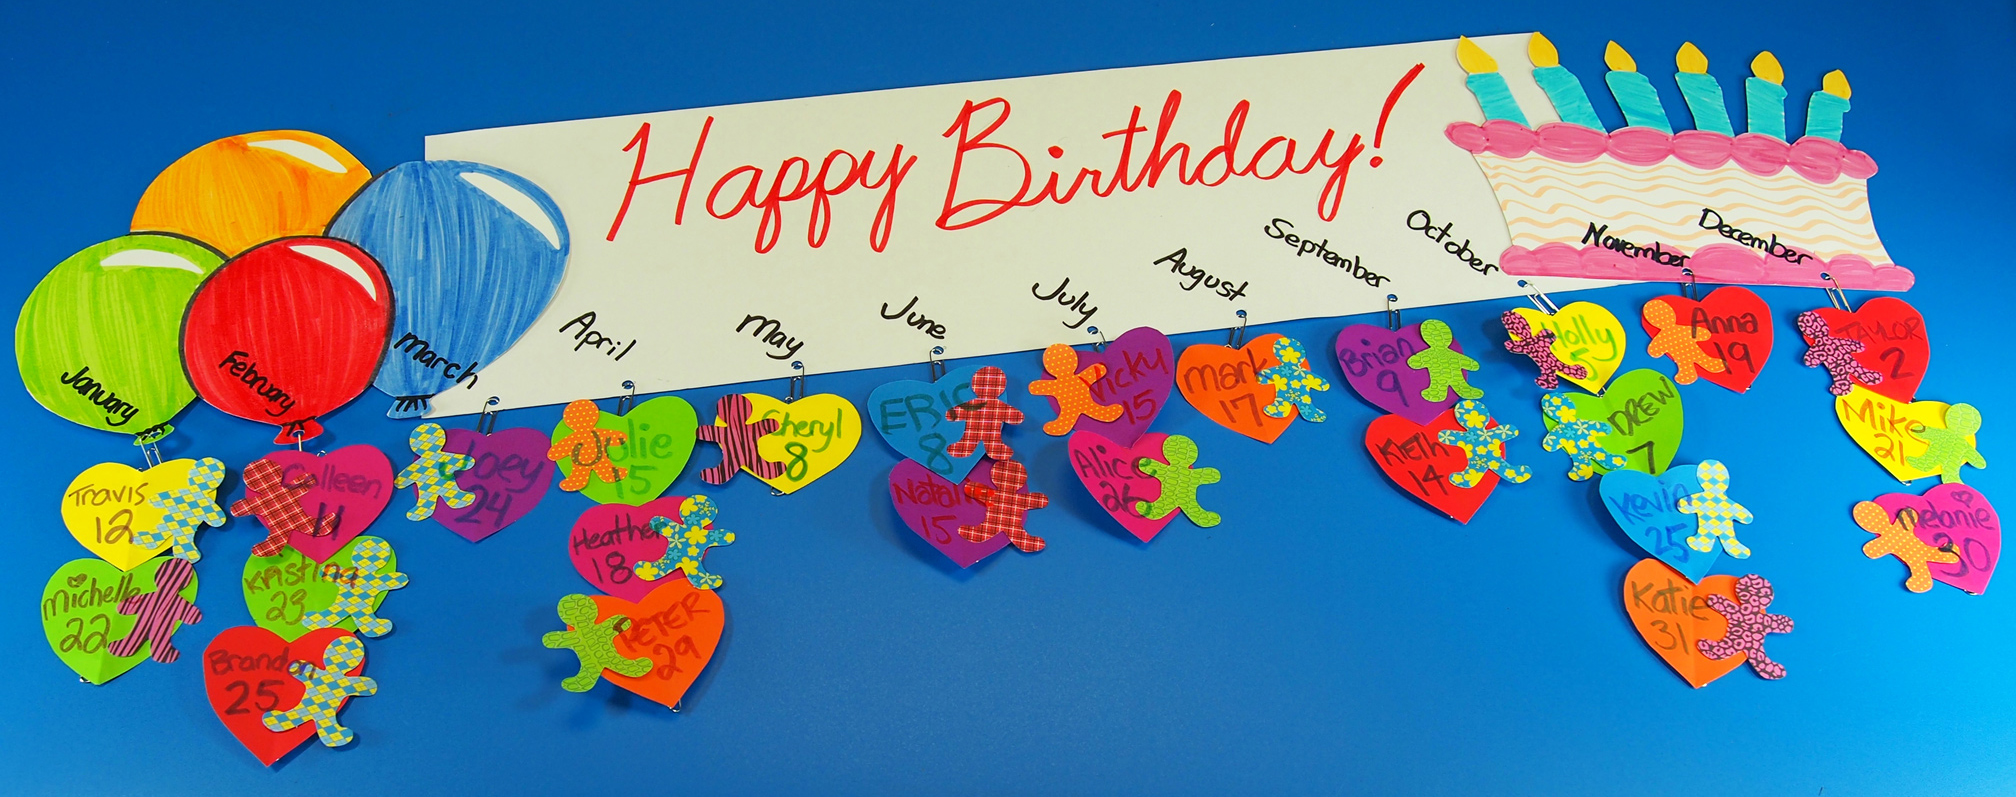 ... the birthday chart. Write a Happy Birthday message across the banner